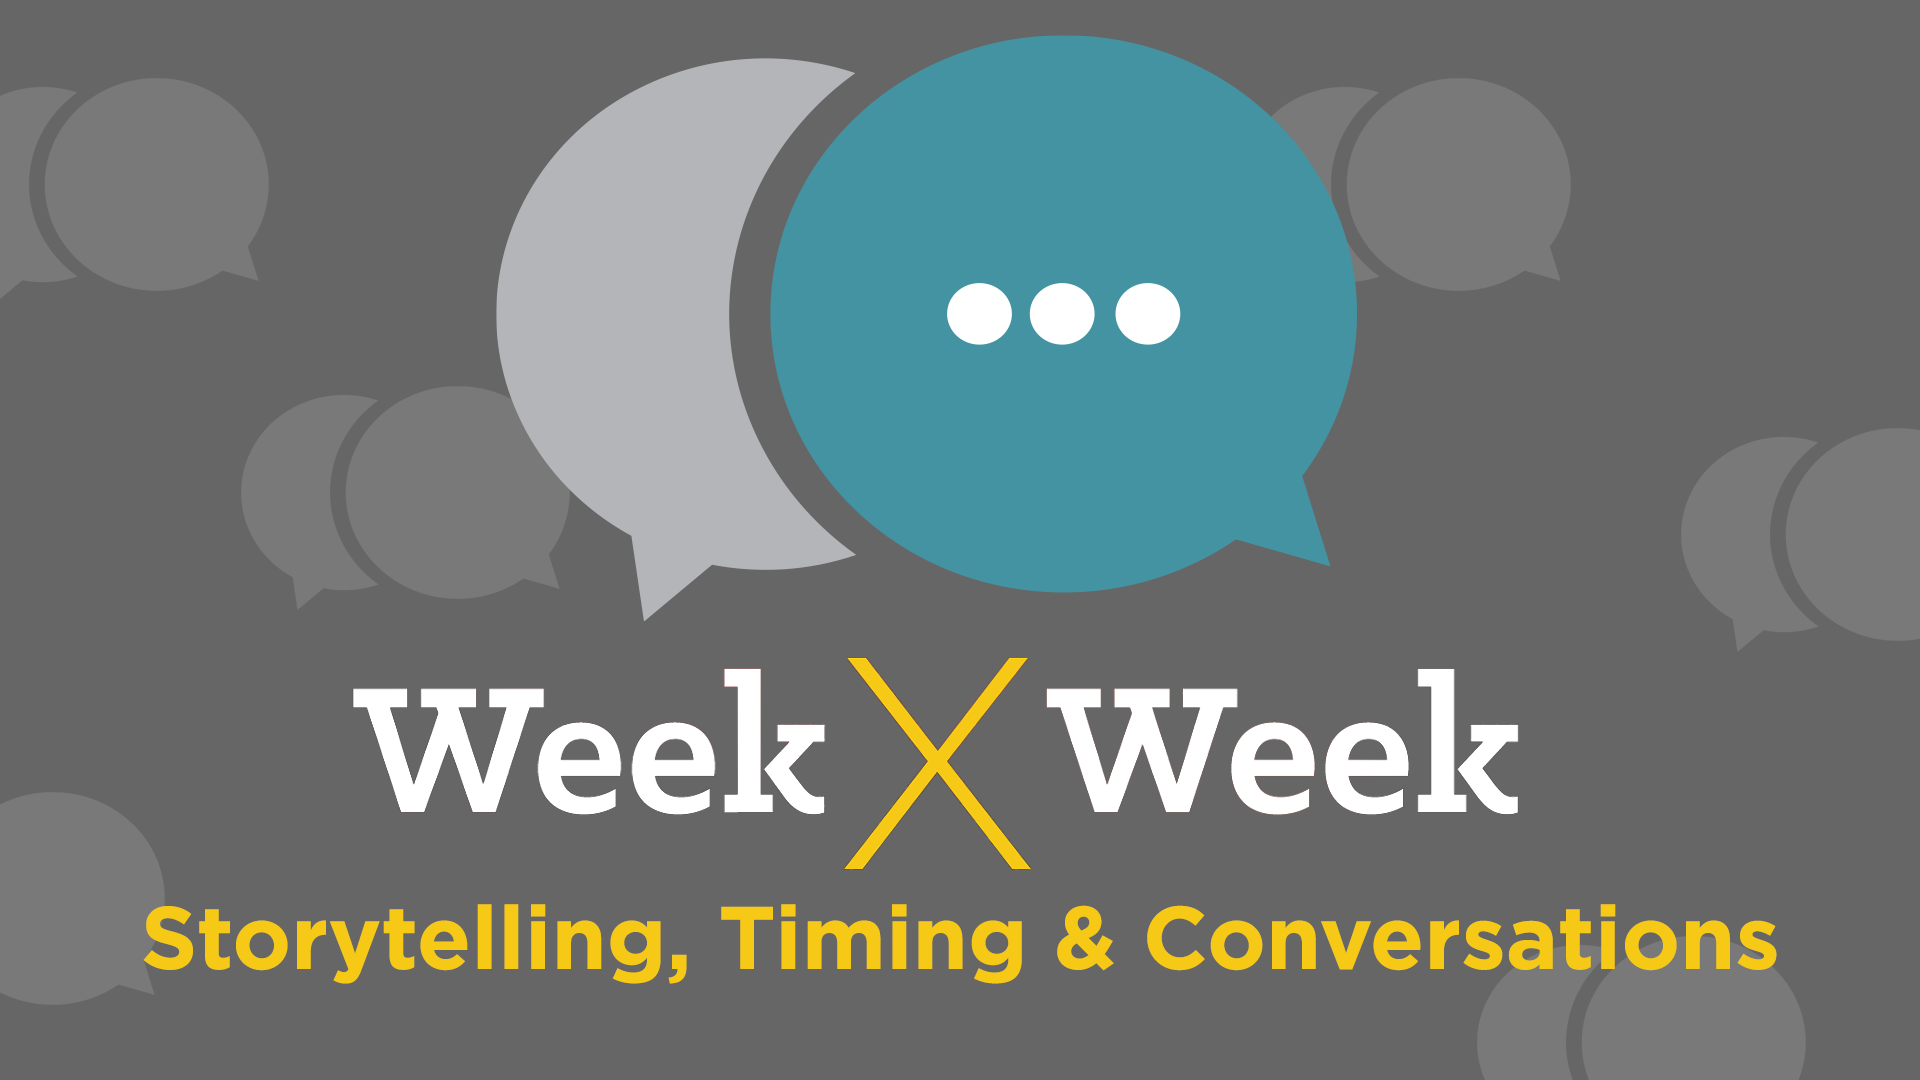 Week x Week: Storytelling, Timing & Conversations Featured Image